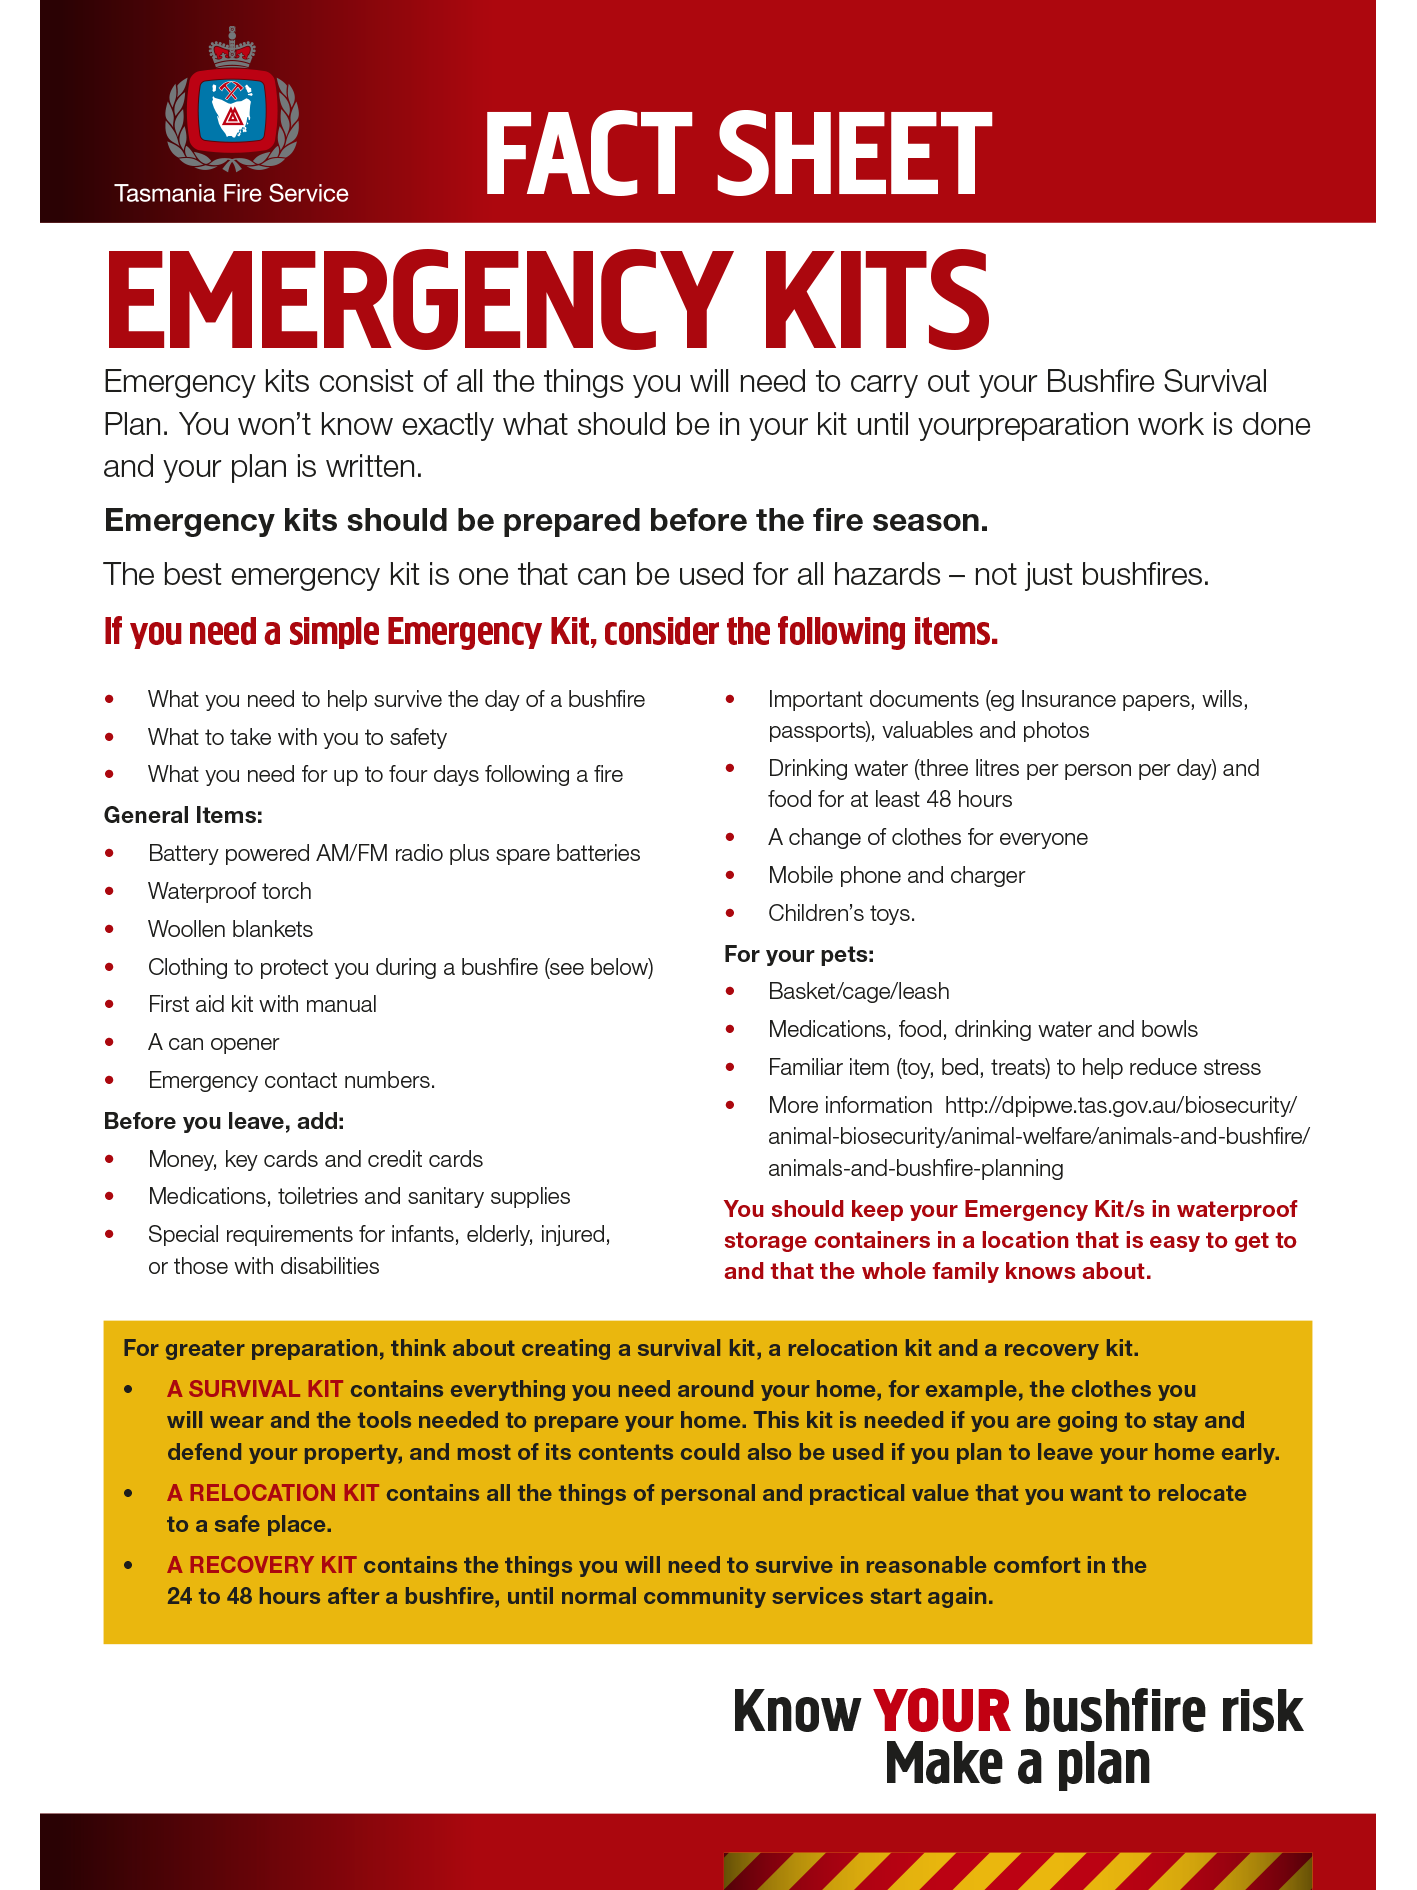 Emergency Kits Fact Sheet